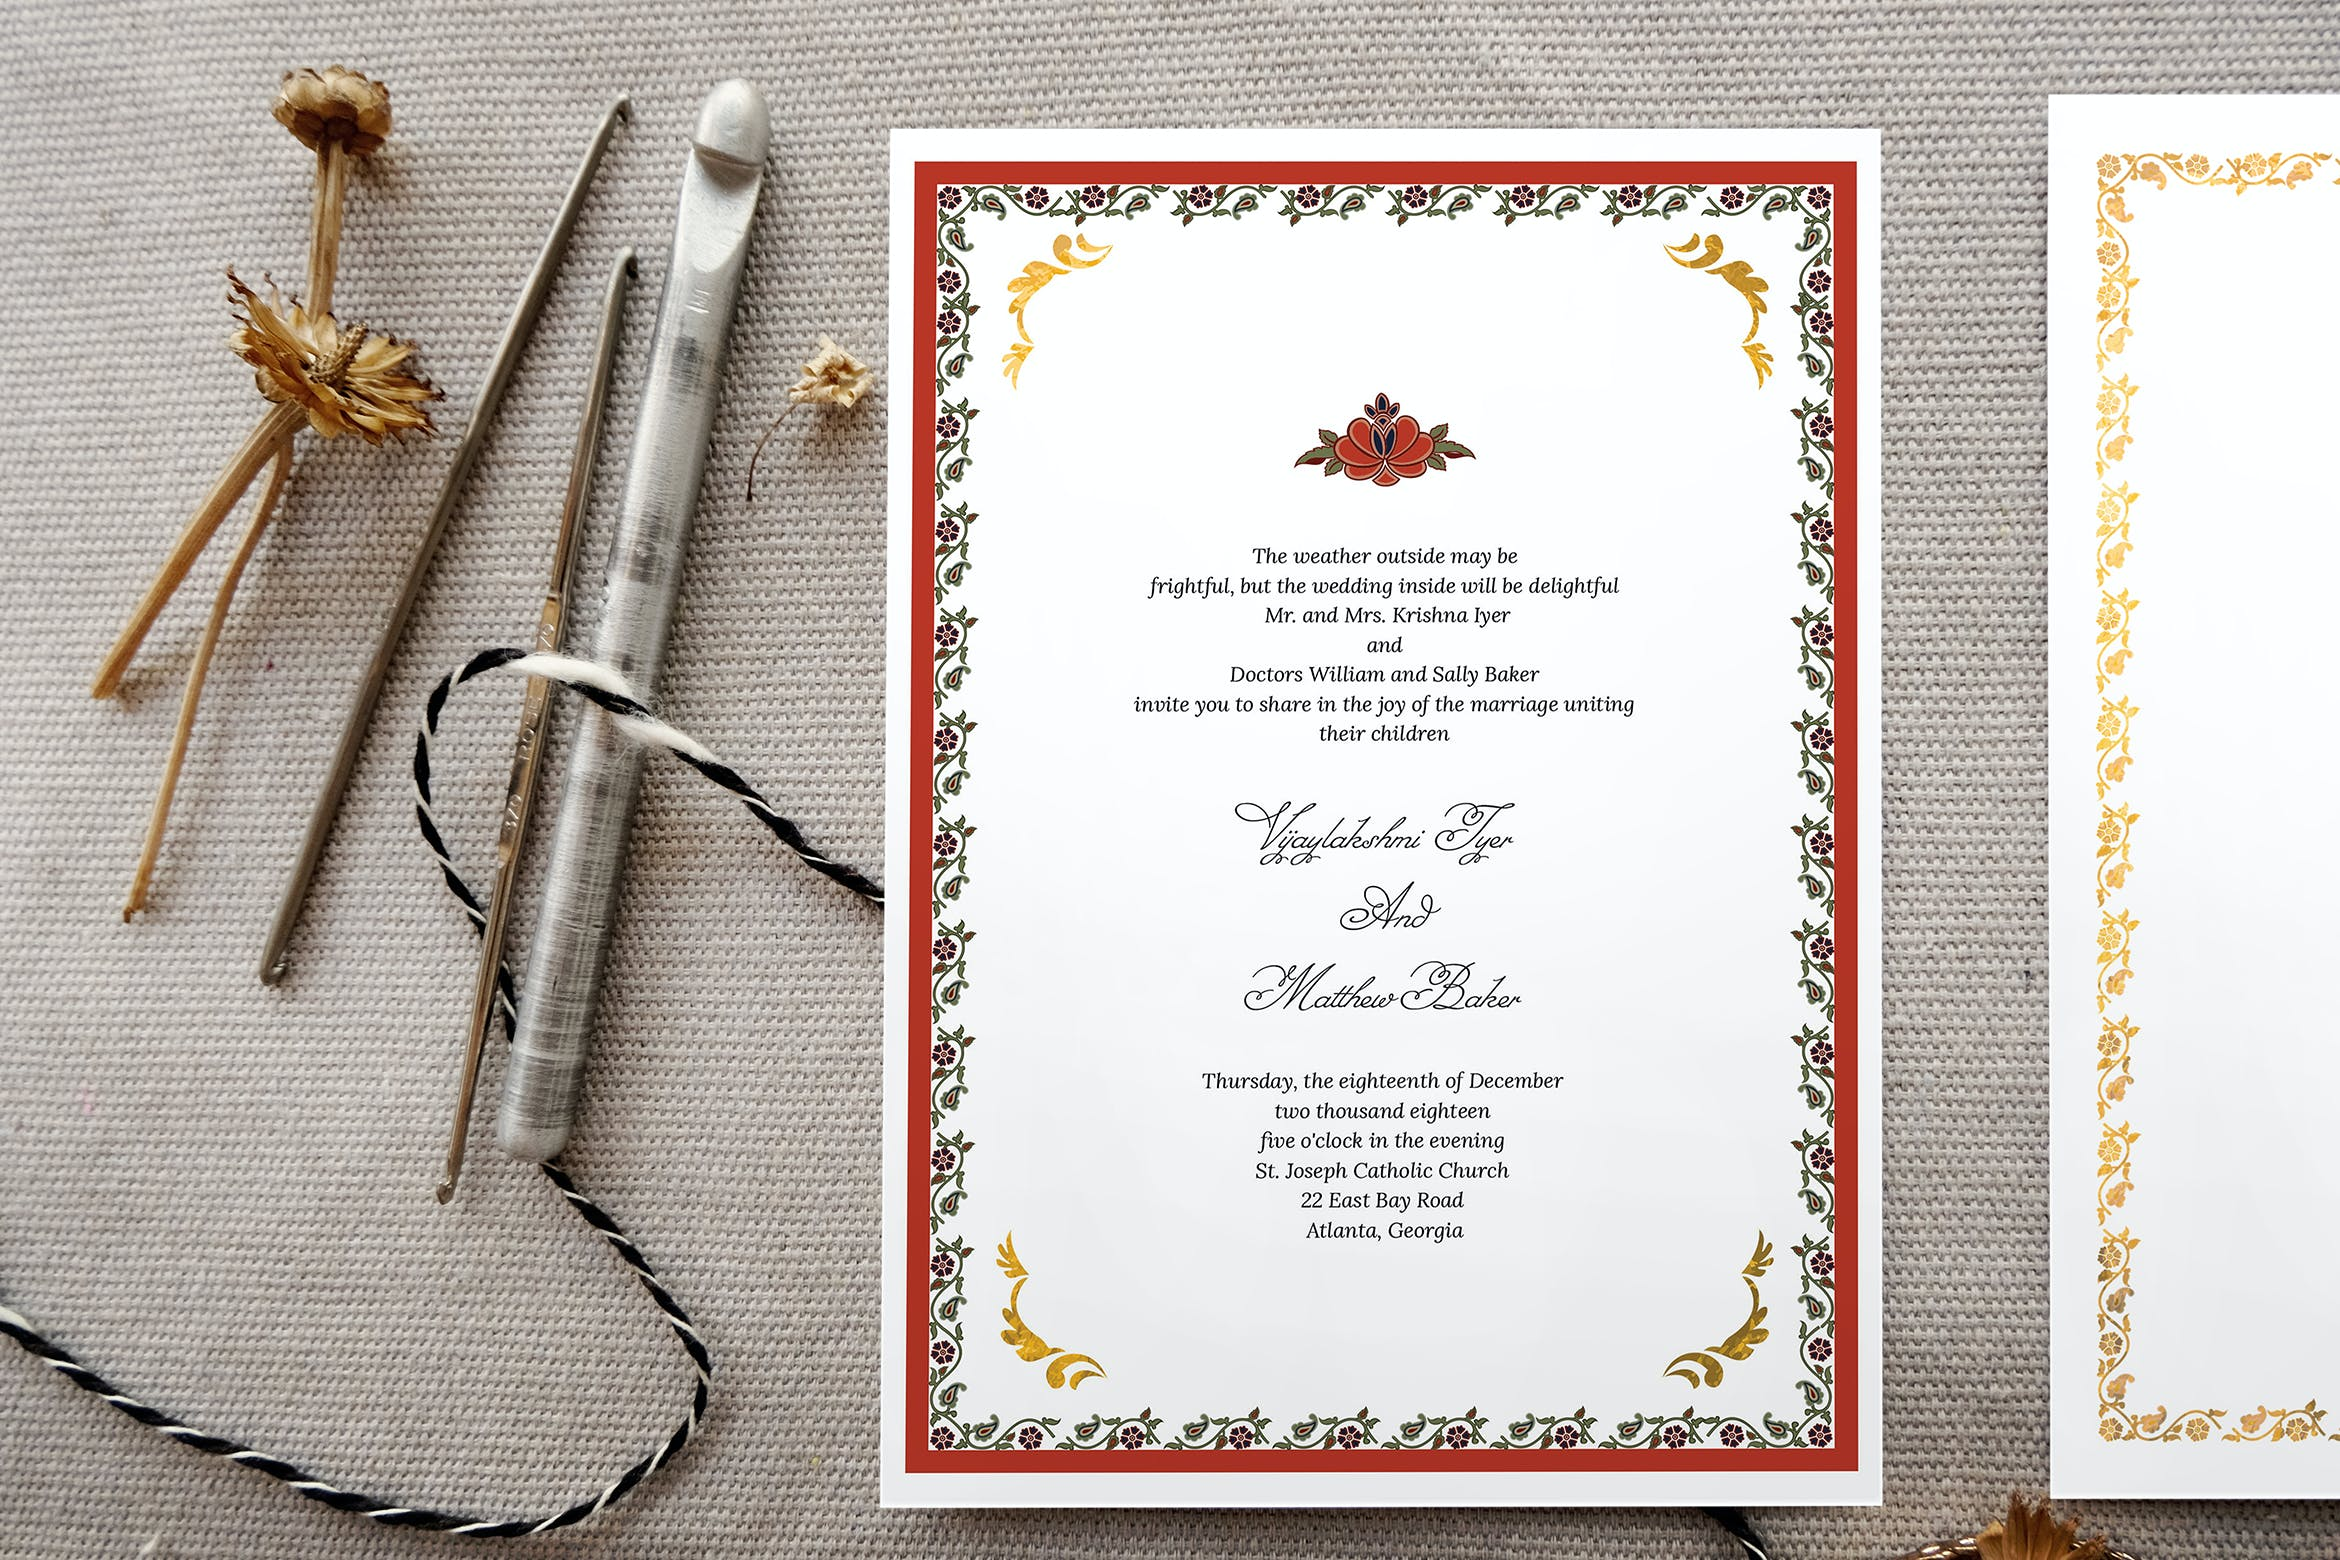 Indian Wedding Invitation Card by Squirrel92 on Envato Elements